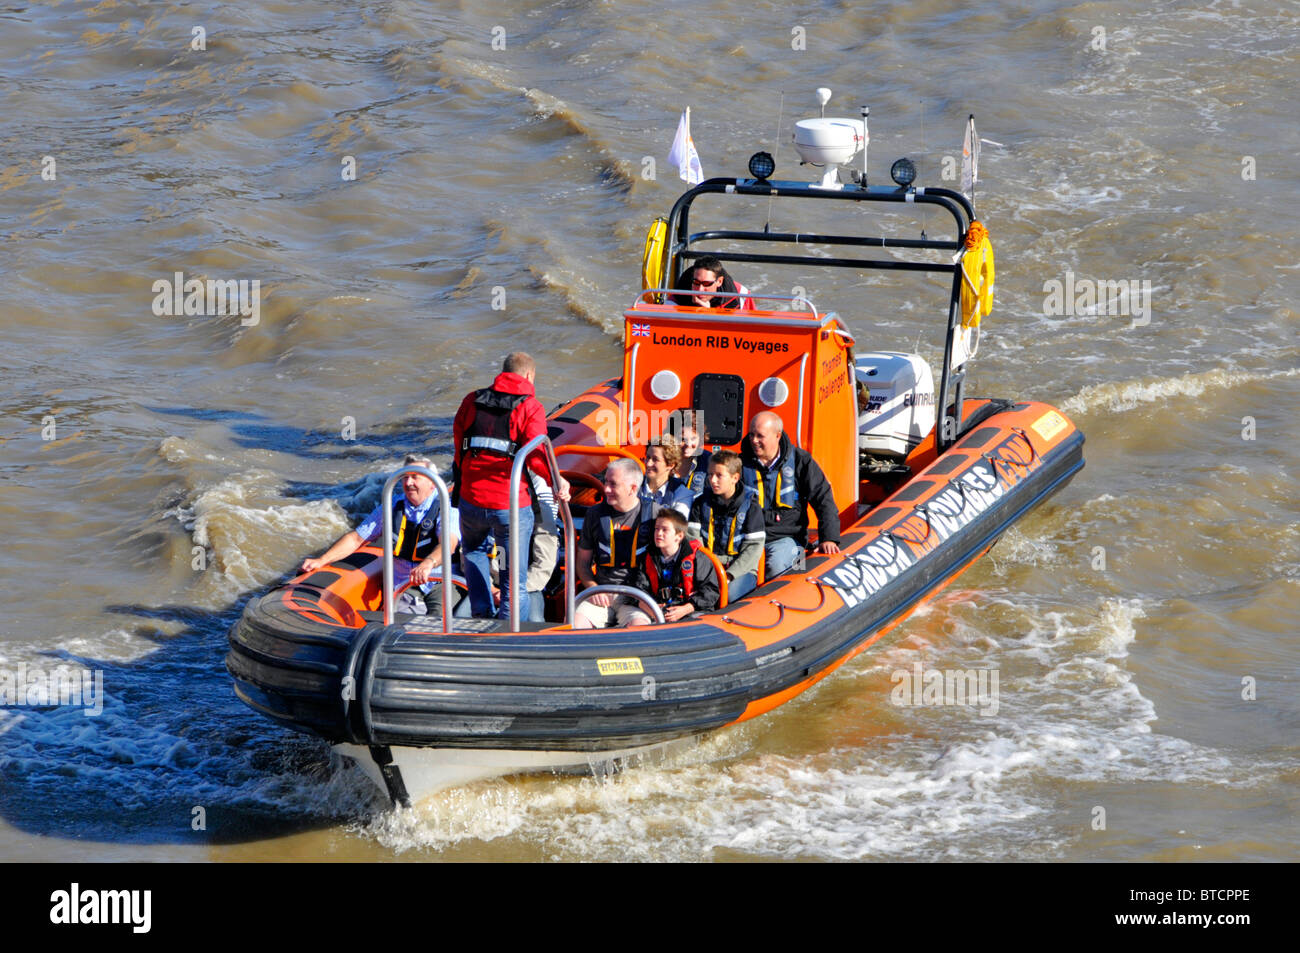 Tourist guide and passengers on London Rib Voyages high speed tour boat - Stock Image